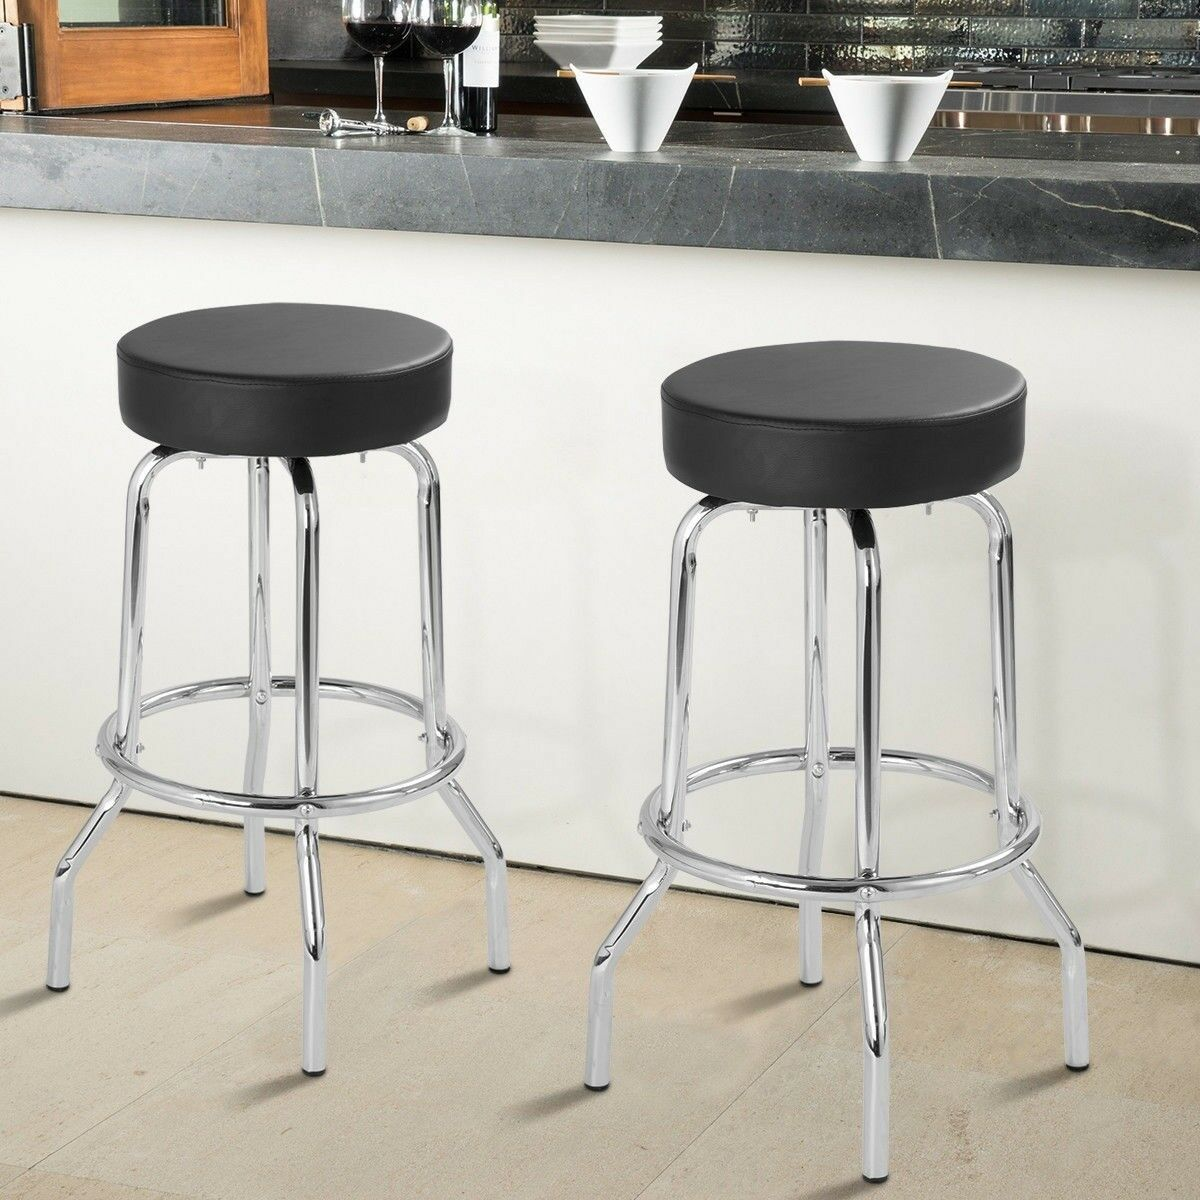 Details about 2 set metal bar stools padded seat backless